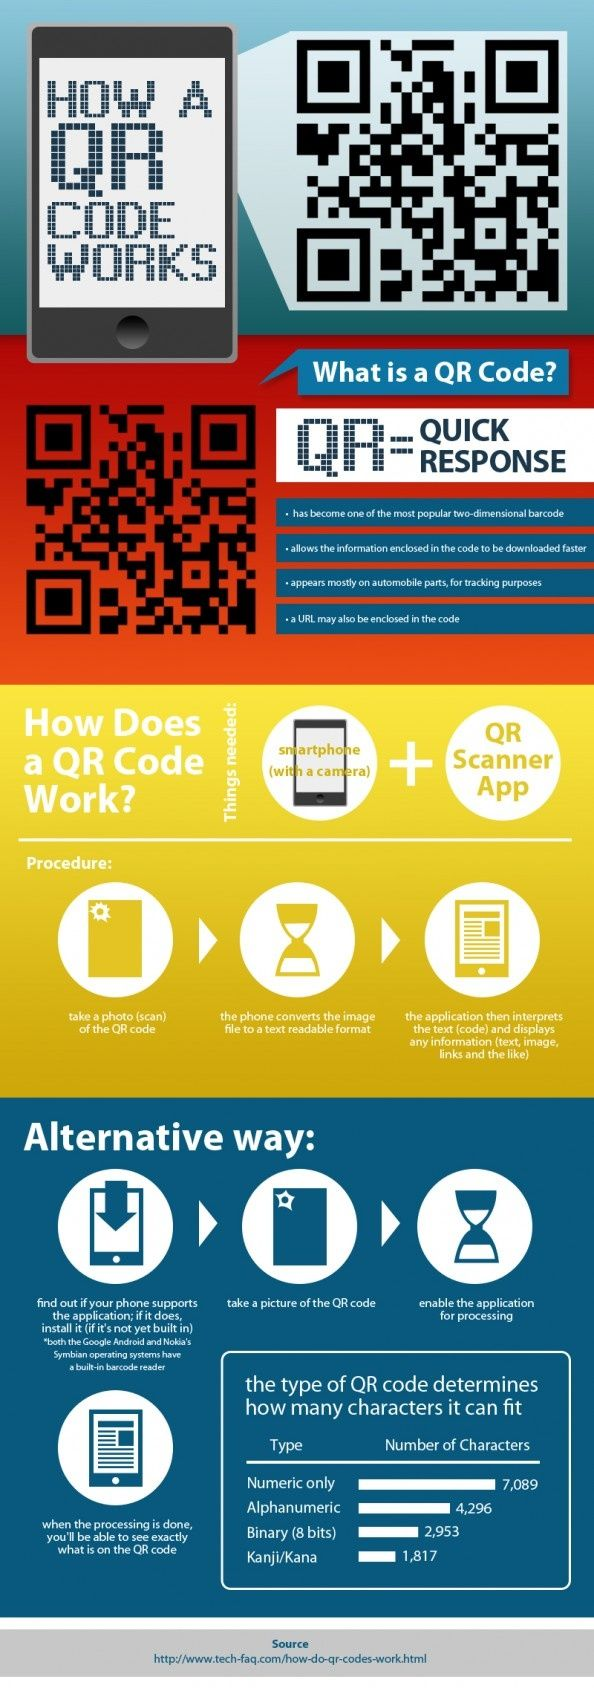 How a #QR Code Works